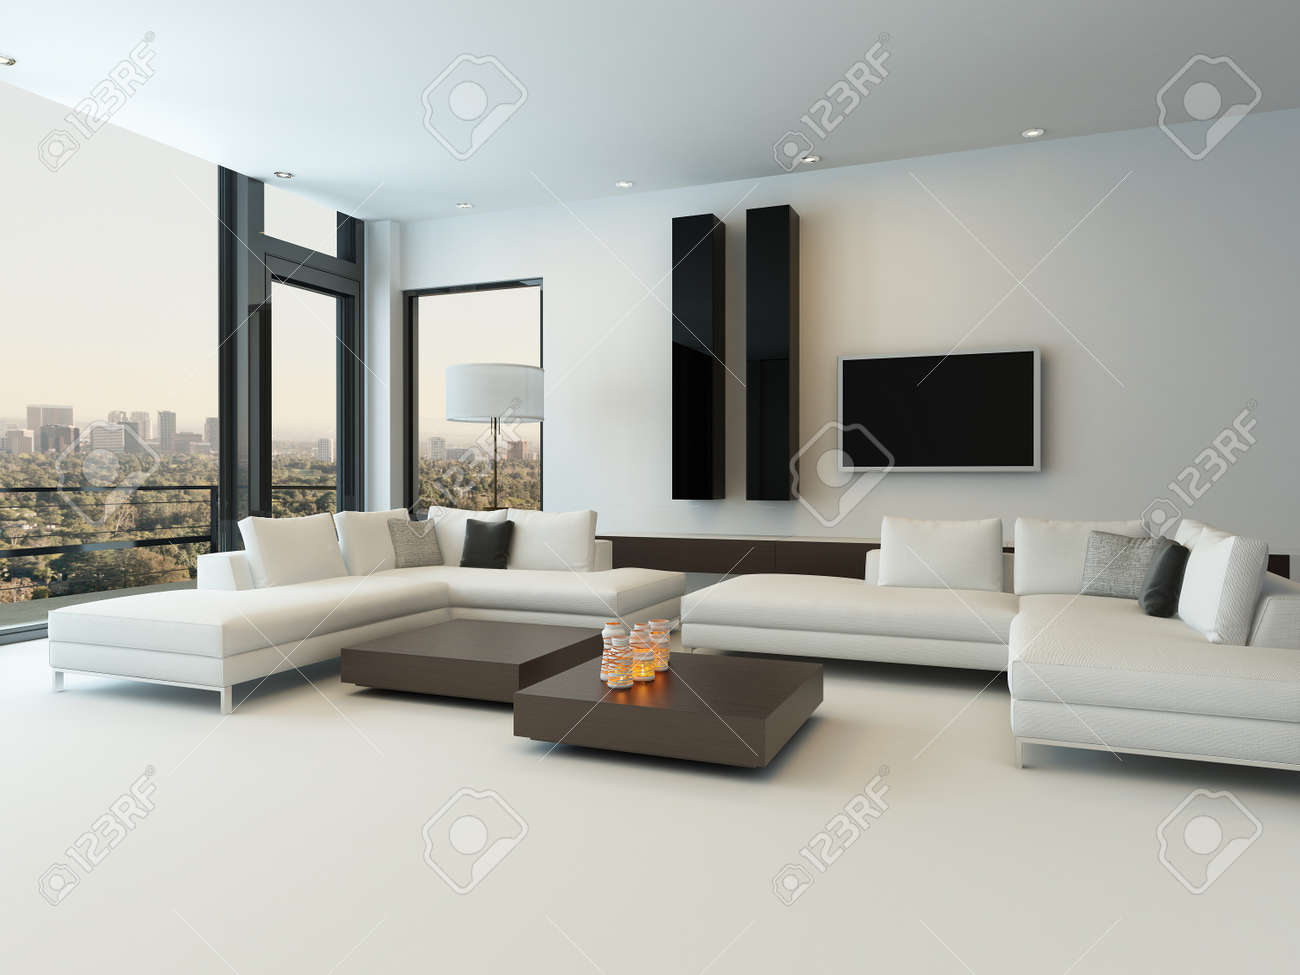 Modern Woonkamer Design : Modern design sunny living room interior with white couch stock